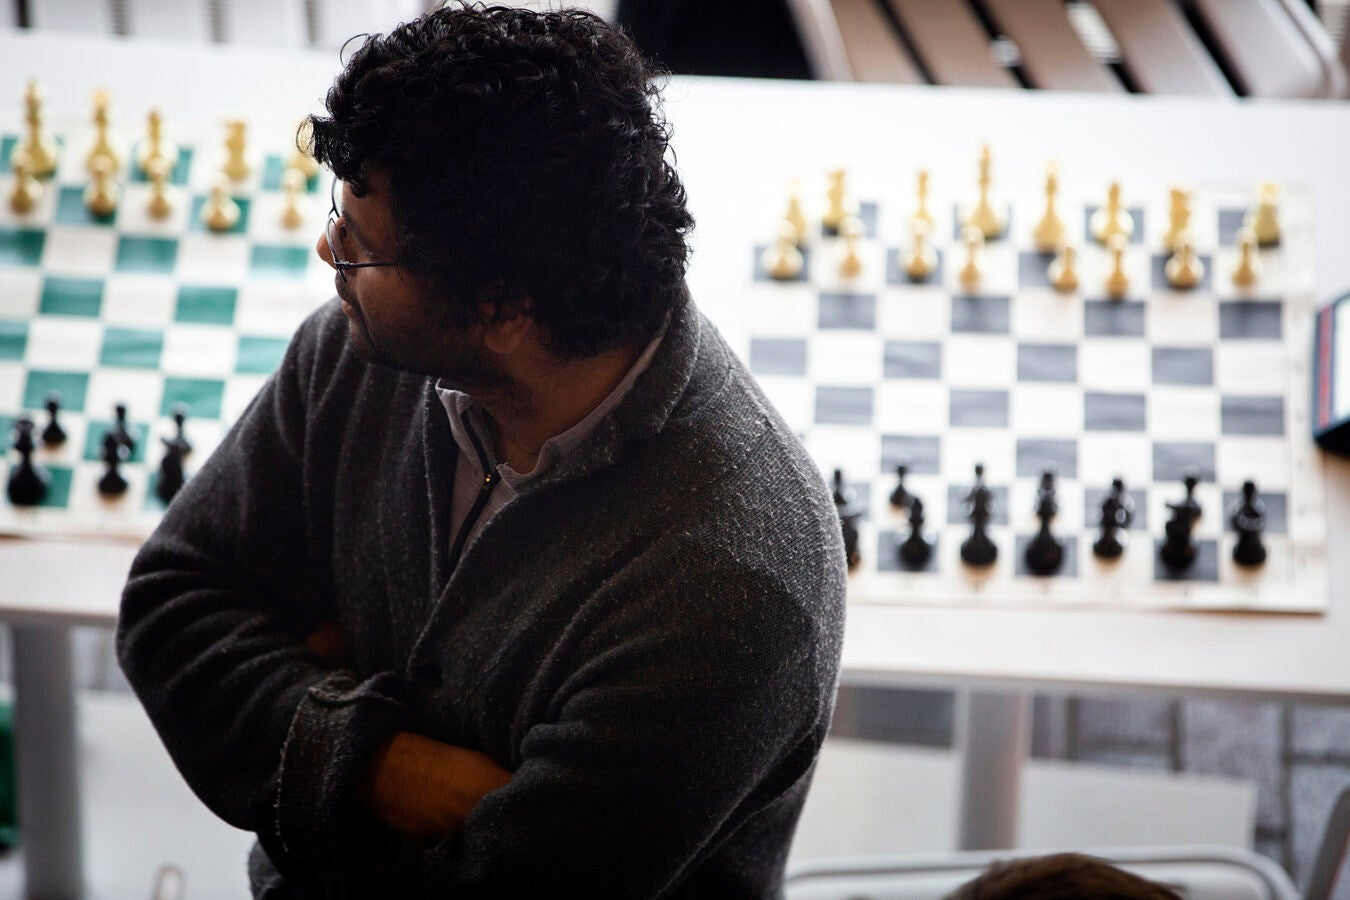 Natesh Pillai takes a break between chess matches.